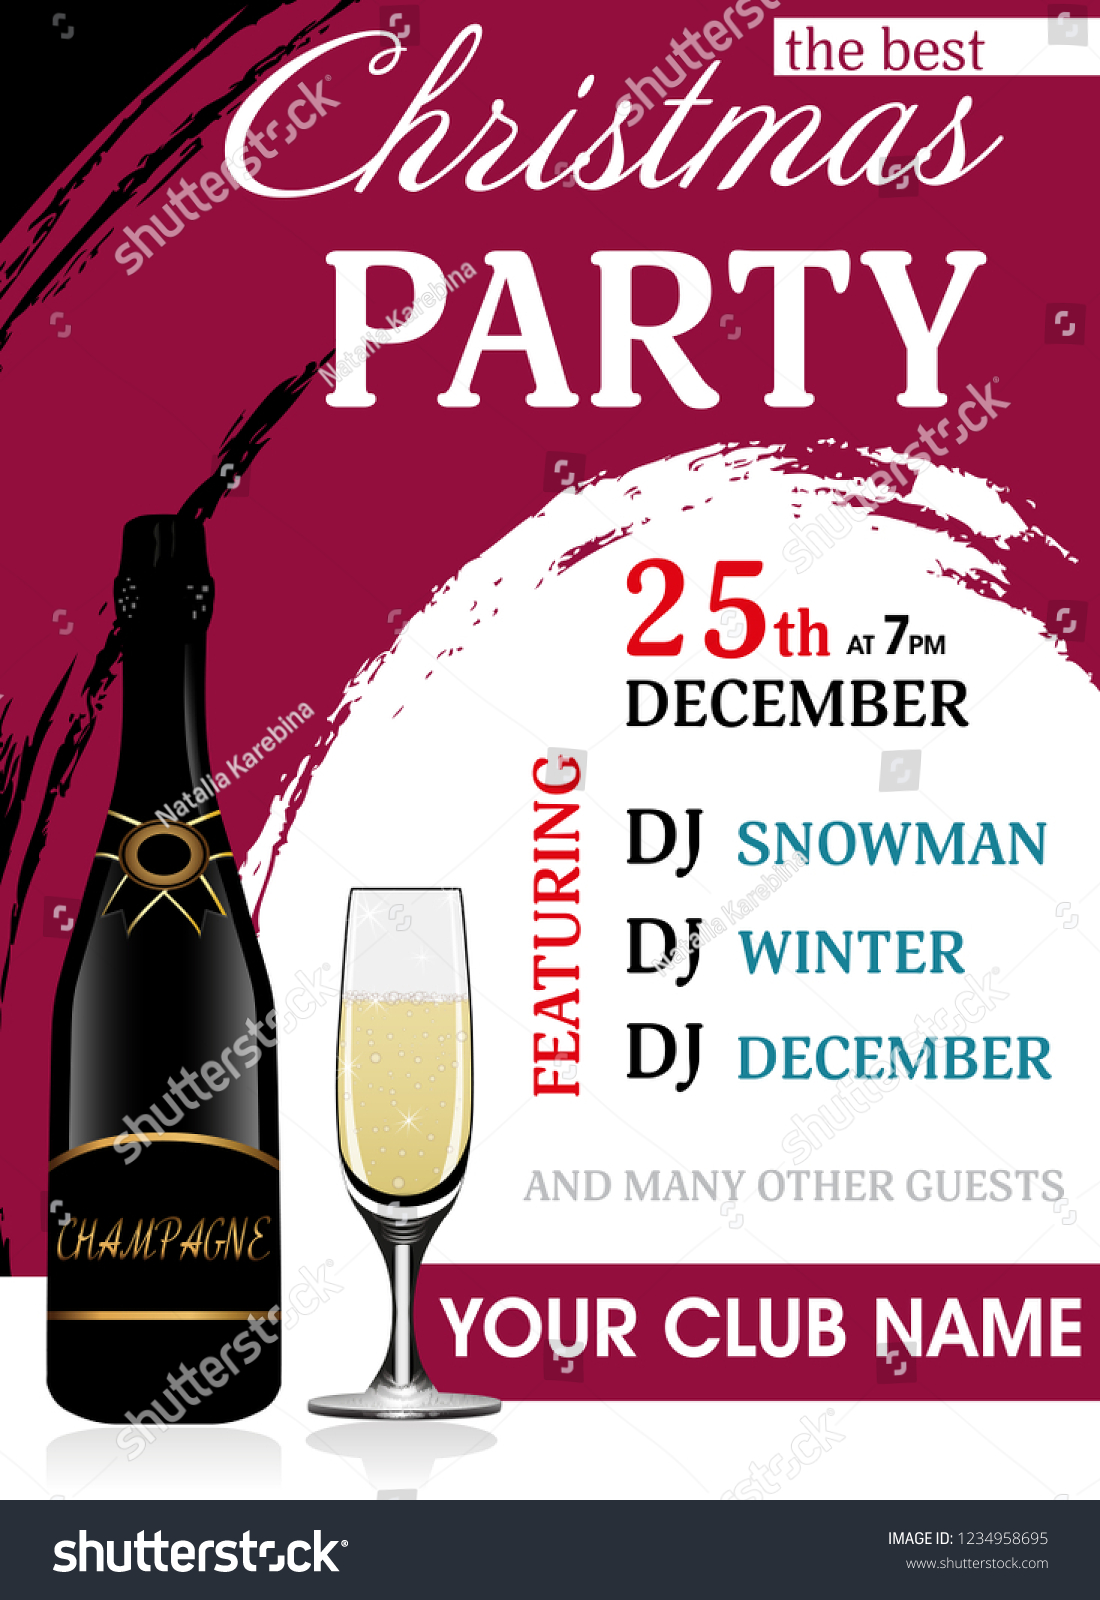 christmas party invitation vertical template with champagne bottle and wineglass new year background vector